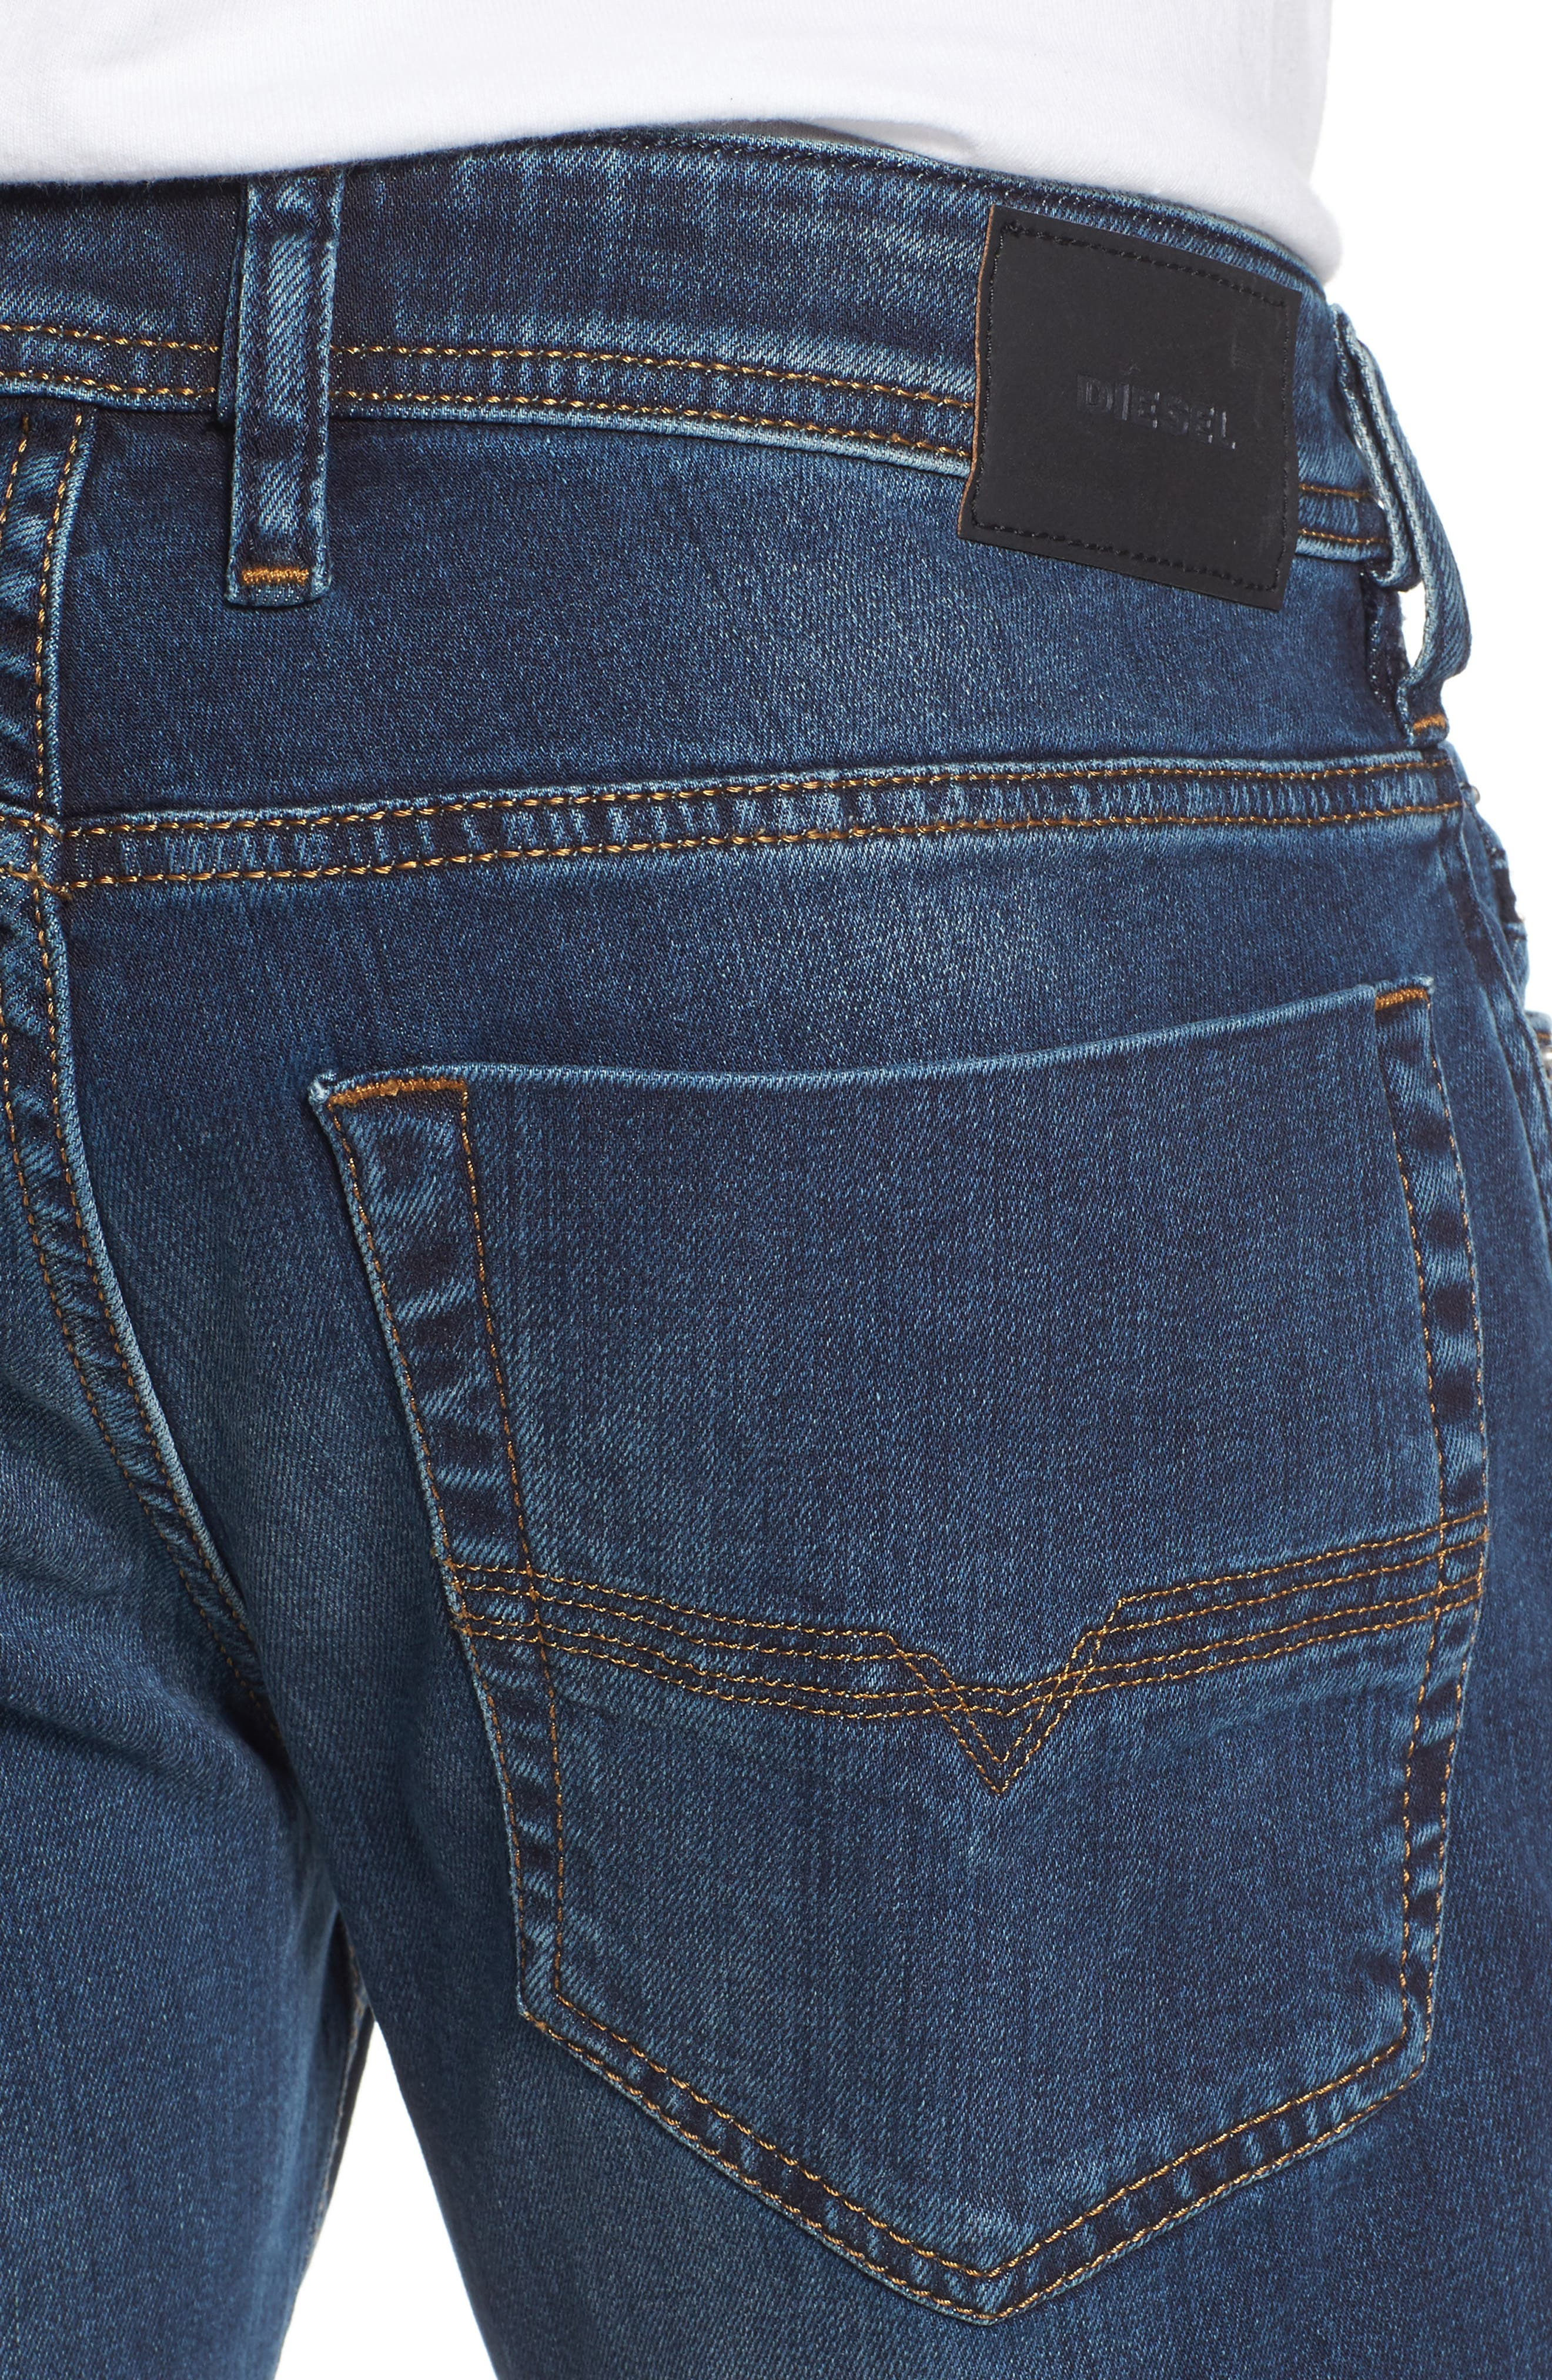 DIESEL<SUP>®</SUP>, Zatiny Bootcut Jeans, Alternate thumbnail 5, color, 084BU